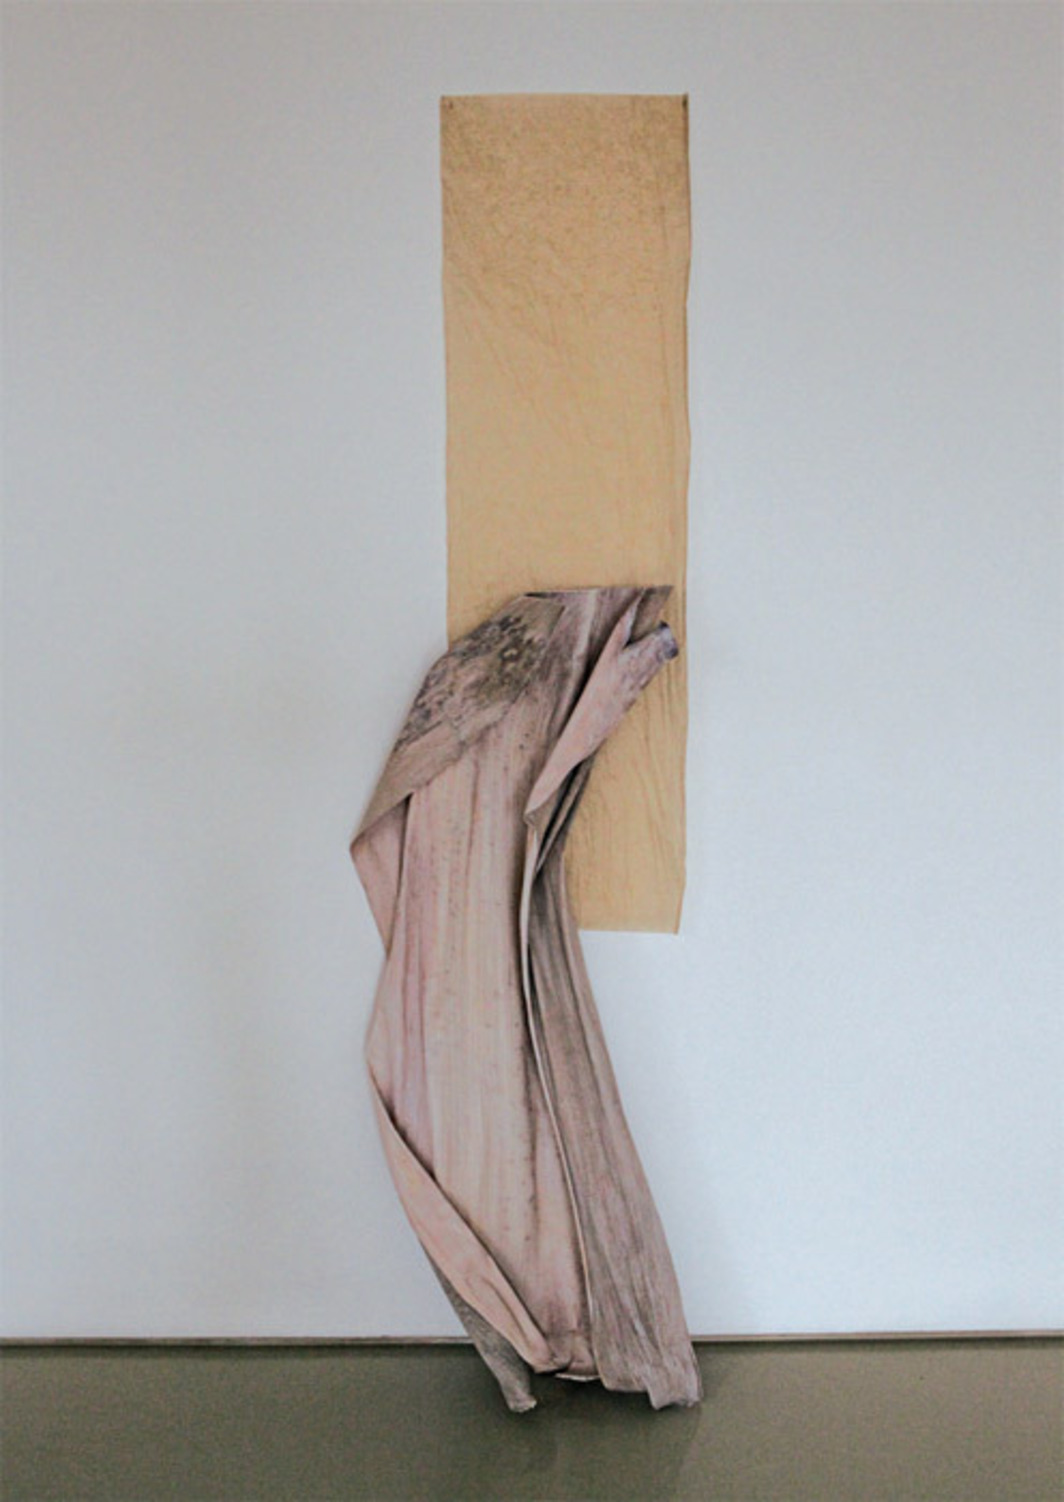 "Gyan Panchal, wedhneumi, 2012, palm tree bark, paint, paper, 80 x 19 5/8 x 9 1/2""."